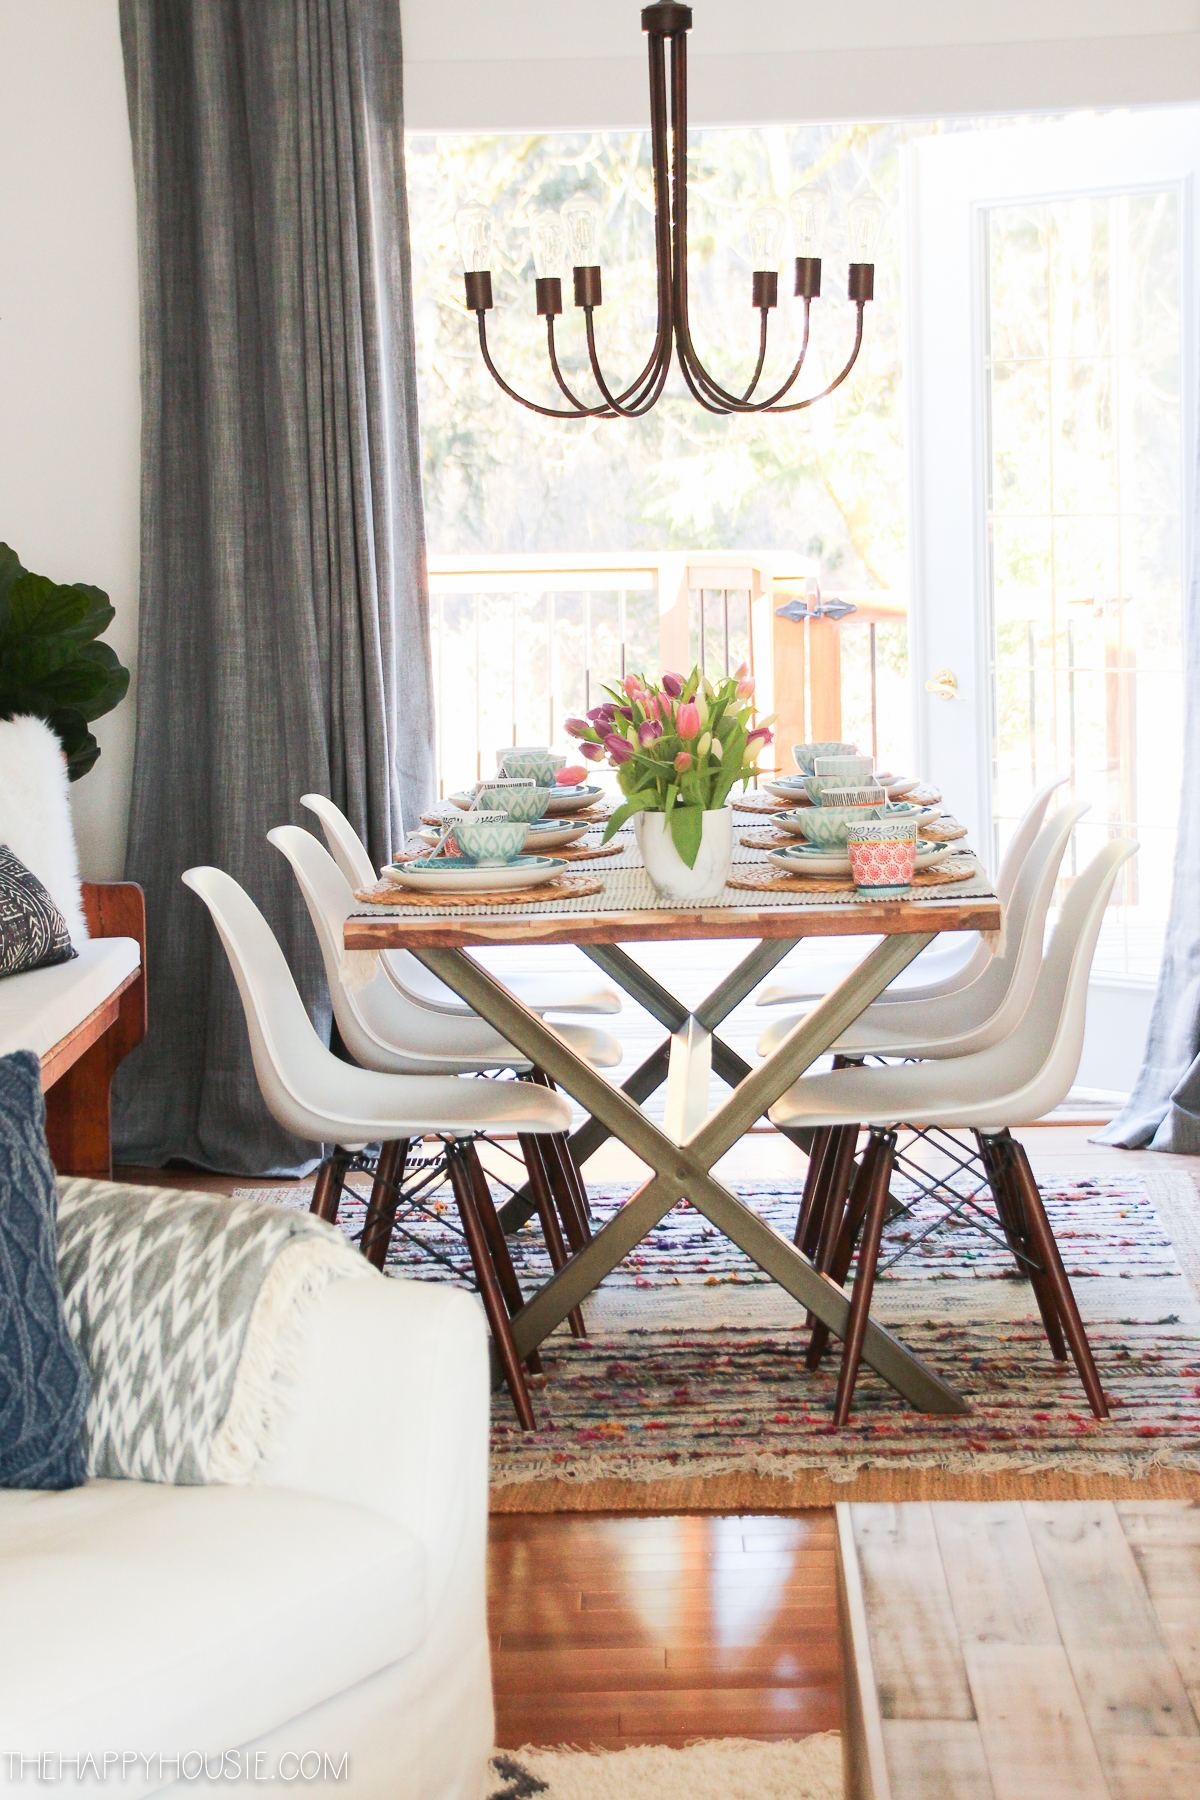 Today I am sharing our Spring dining room